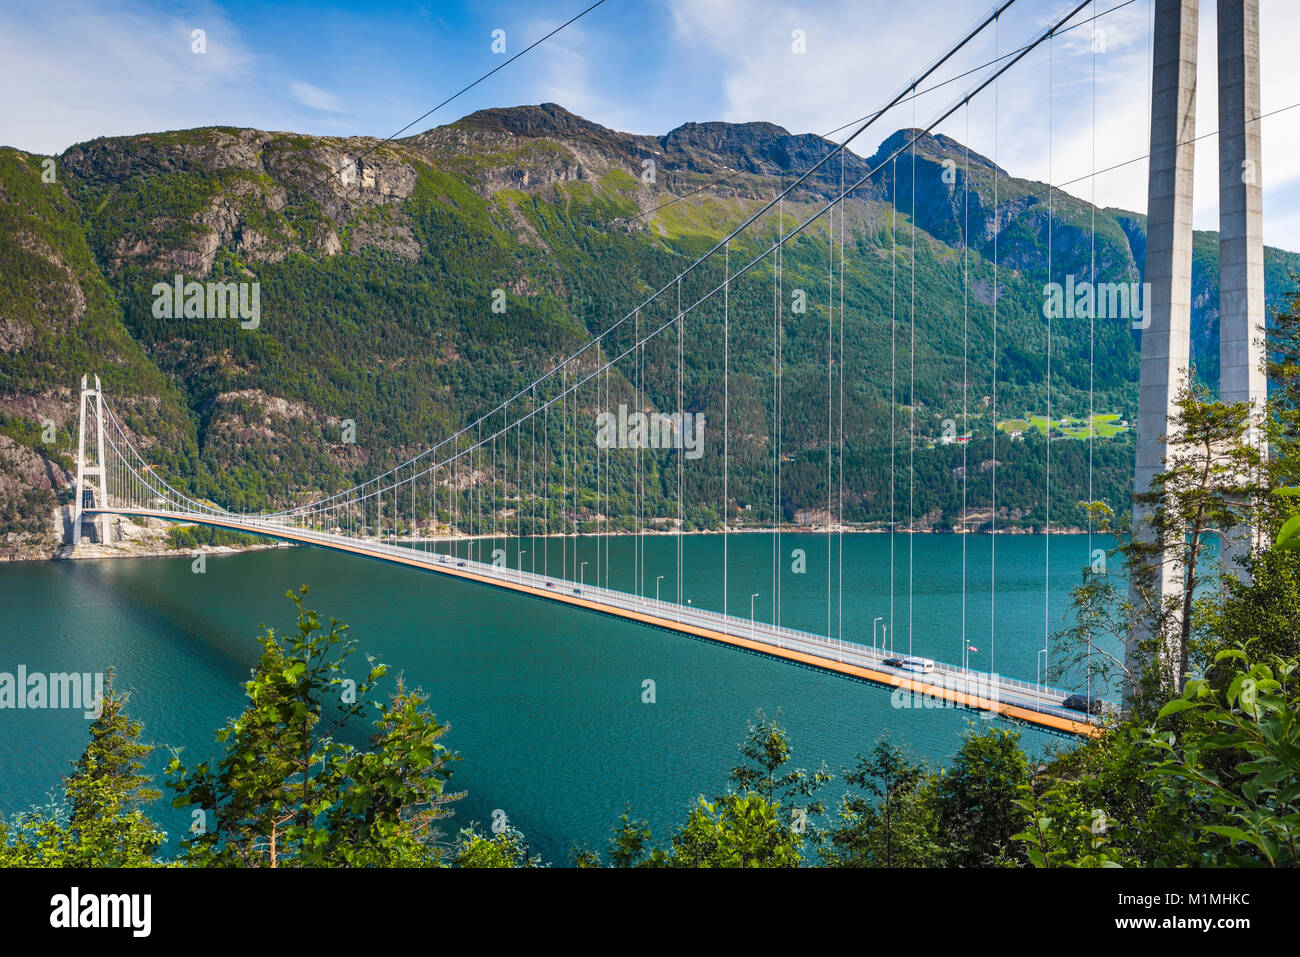 Hardanger Bridge over the Eidfjorden from above, Norway, Scandinavia, suspension bridge Hardangerbrua, Hardangerfjord - Stock Image